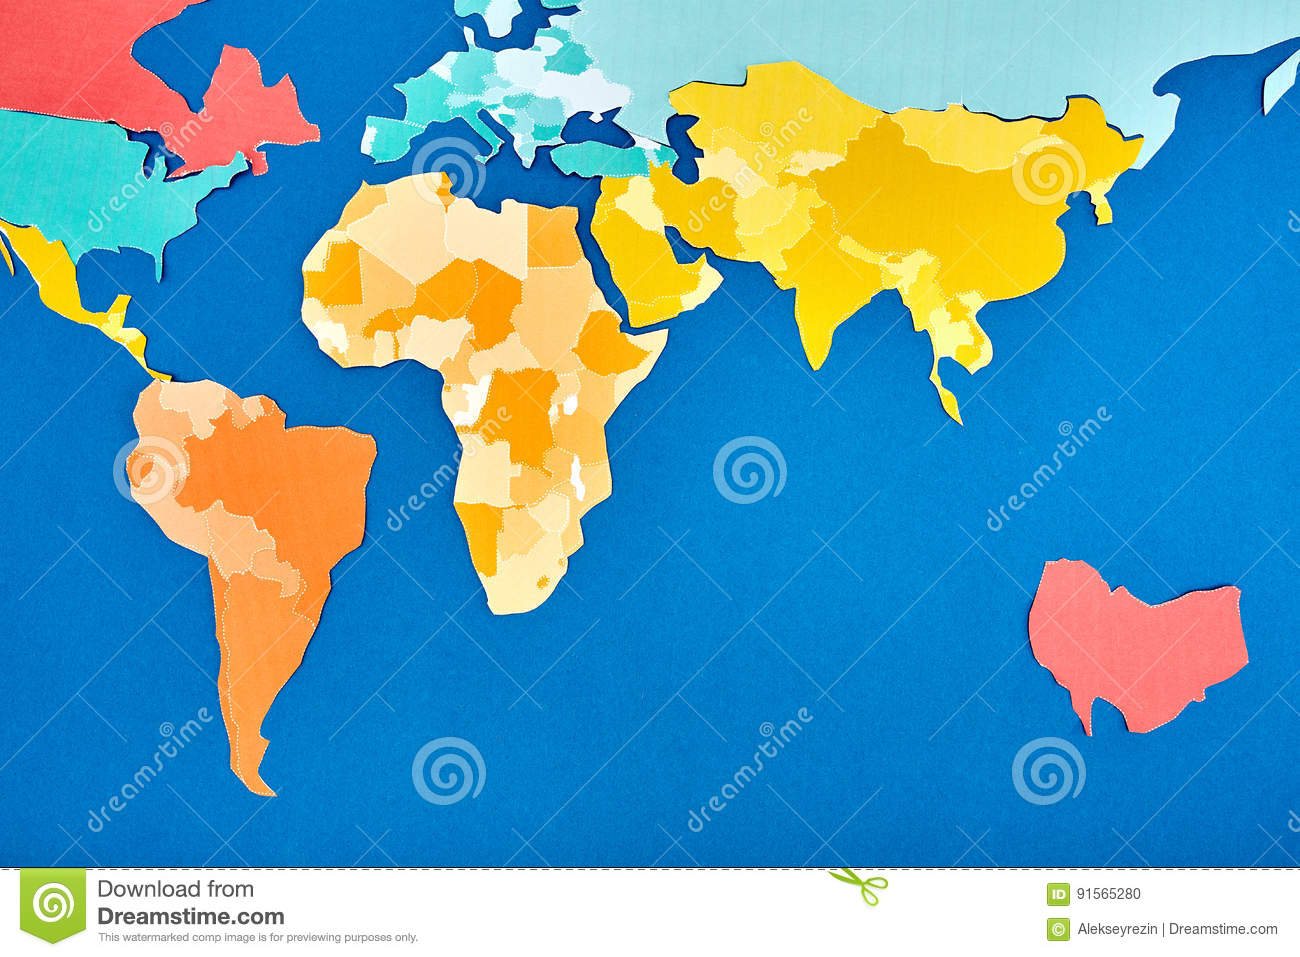 World Map Cut Out Of Colored Paper Based On Blue. Stock ...